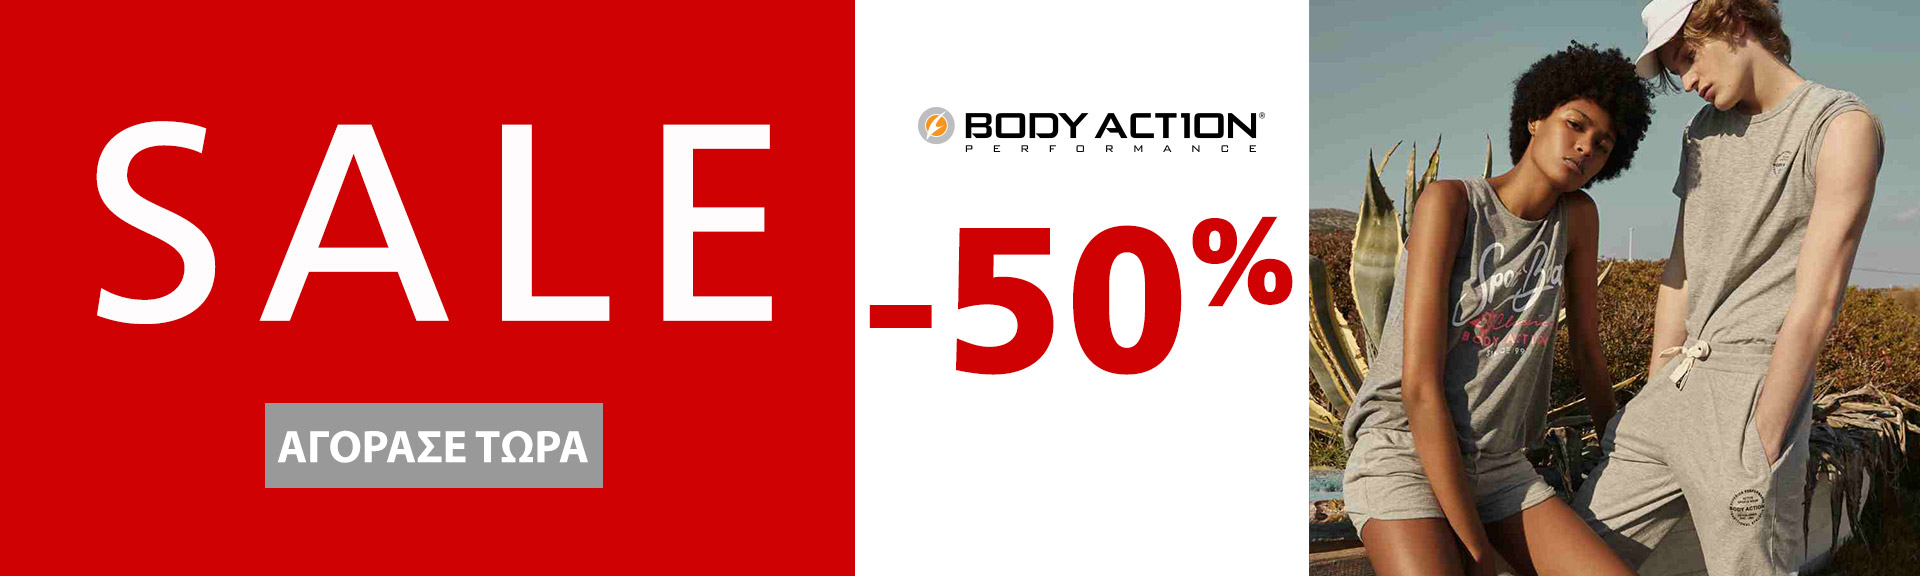 Body Action 50%